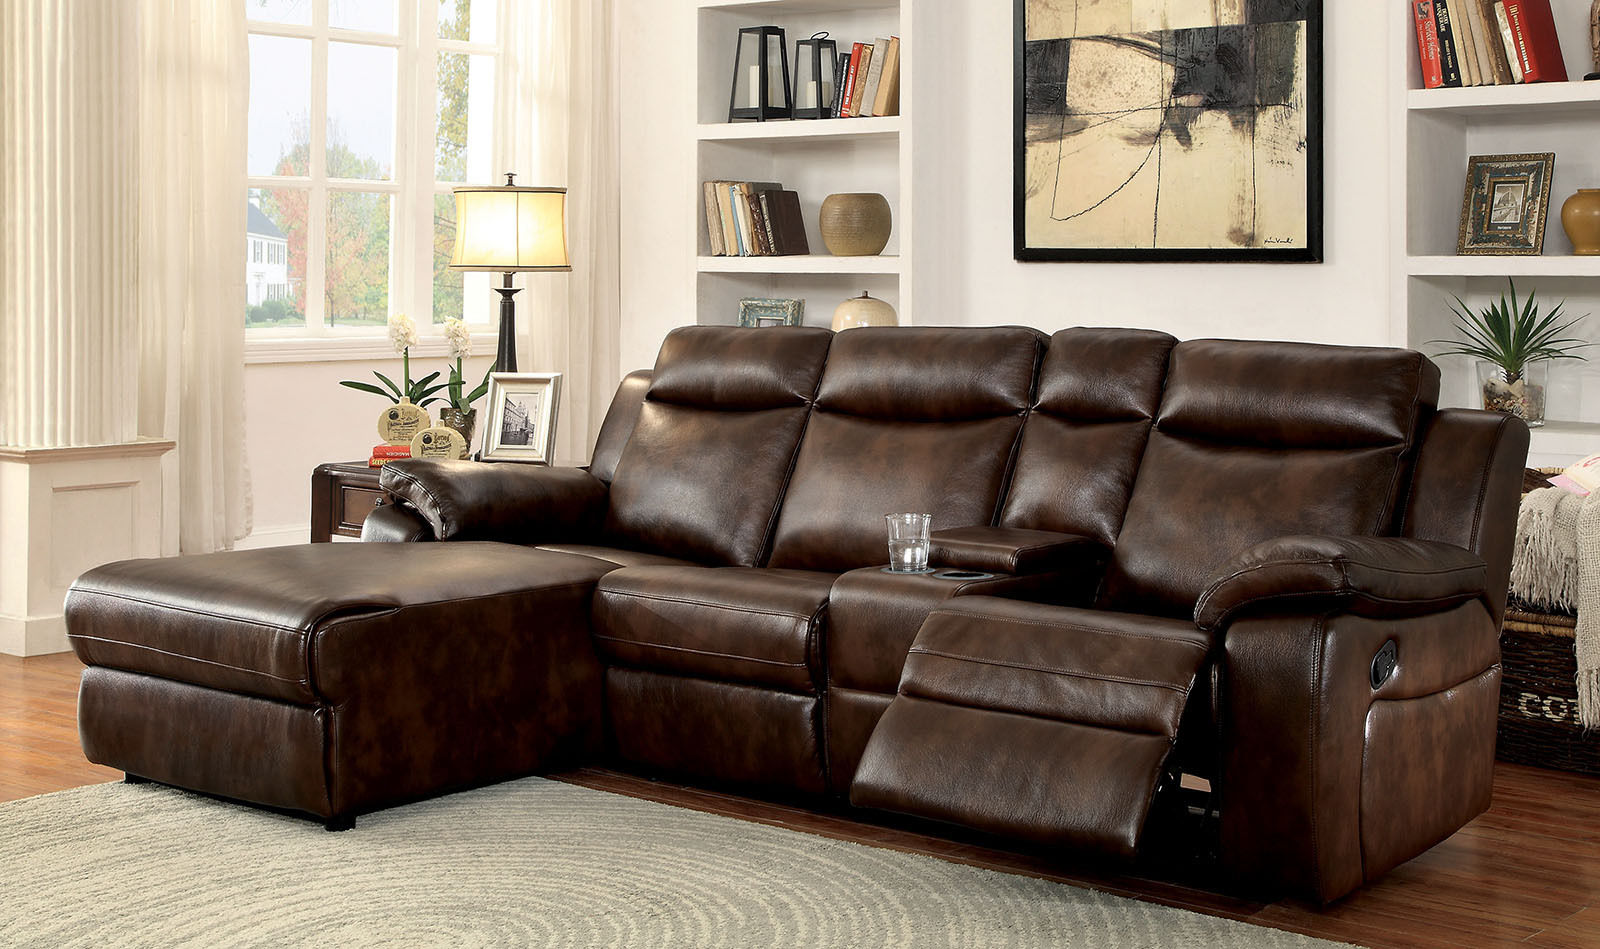 sectional sofa console recliner modern brown leatherette plush cushion arms small corner sectional living room